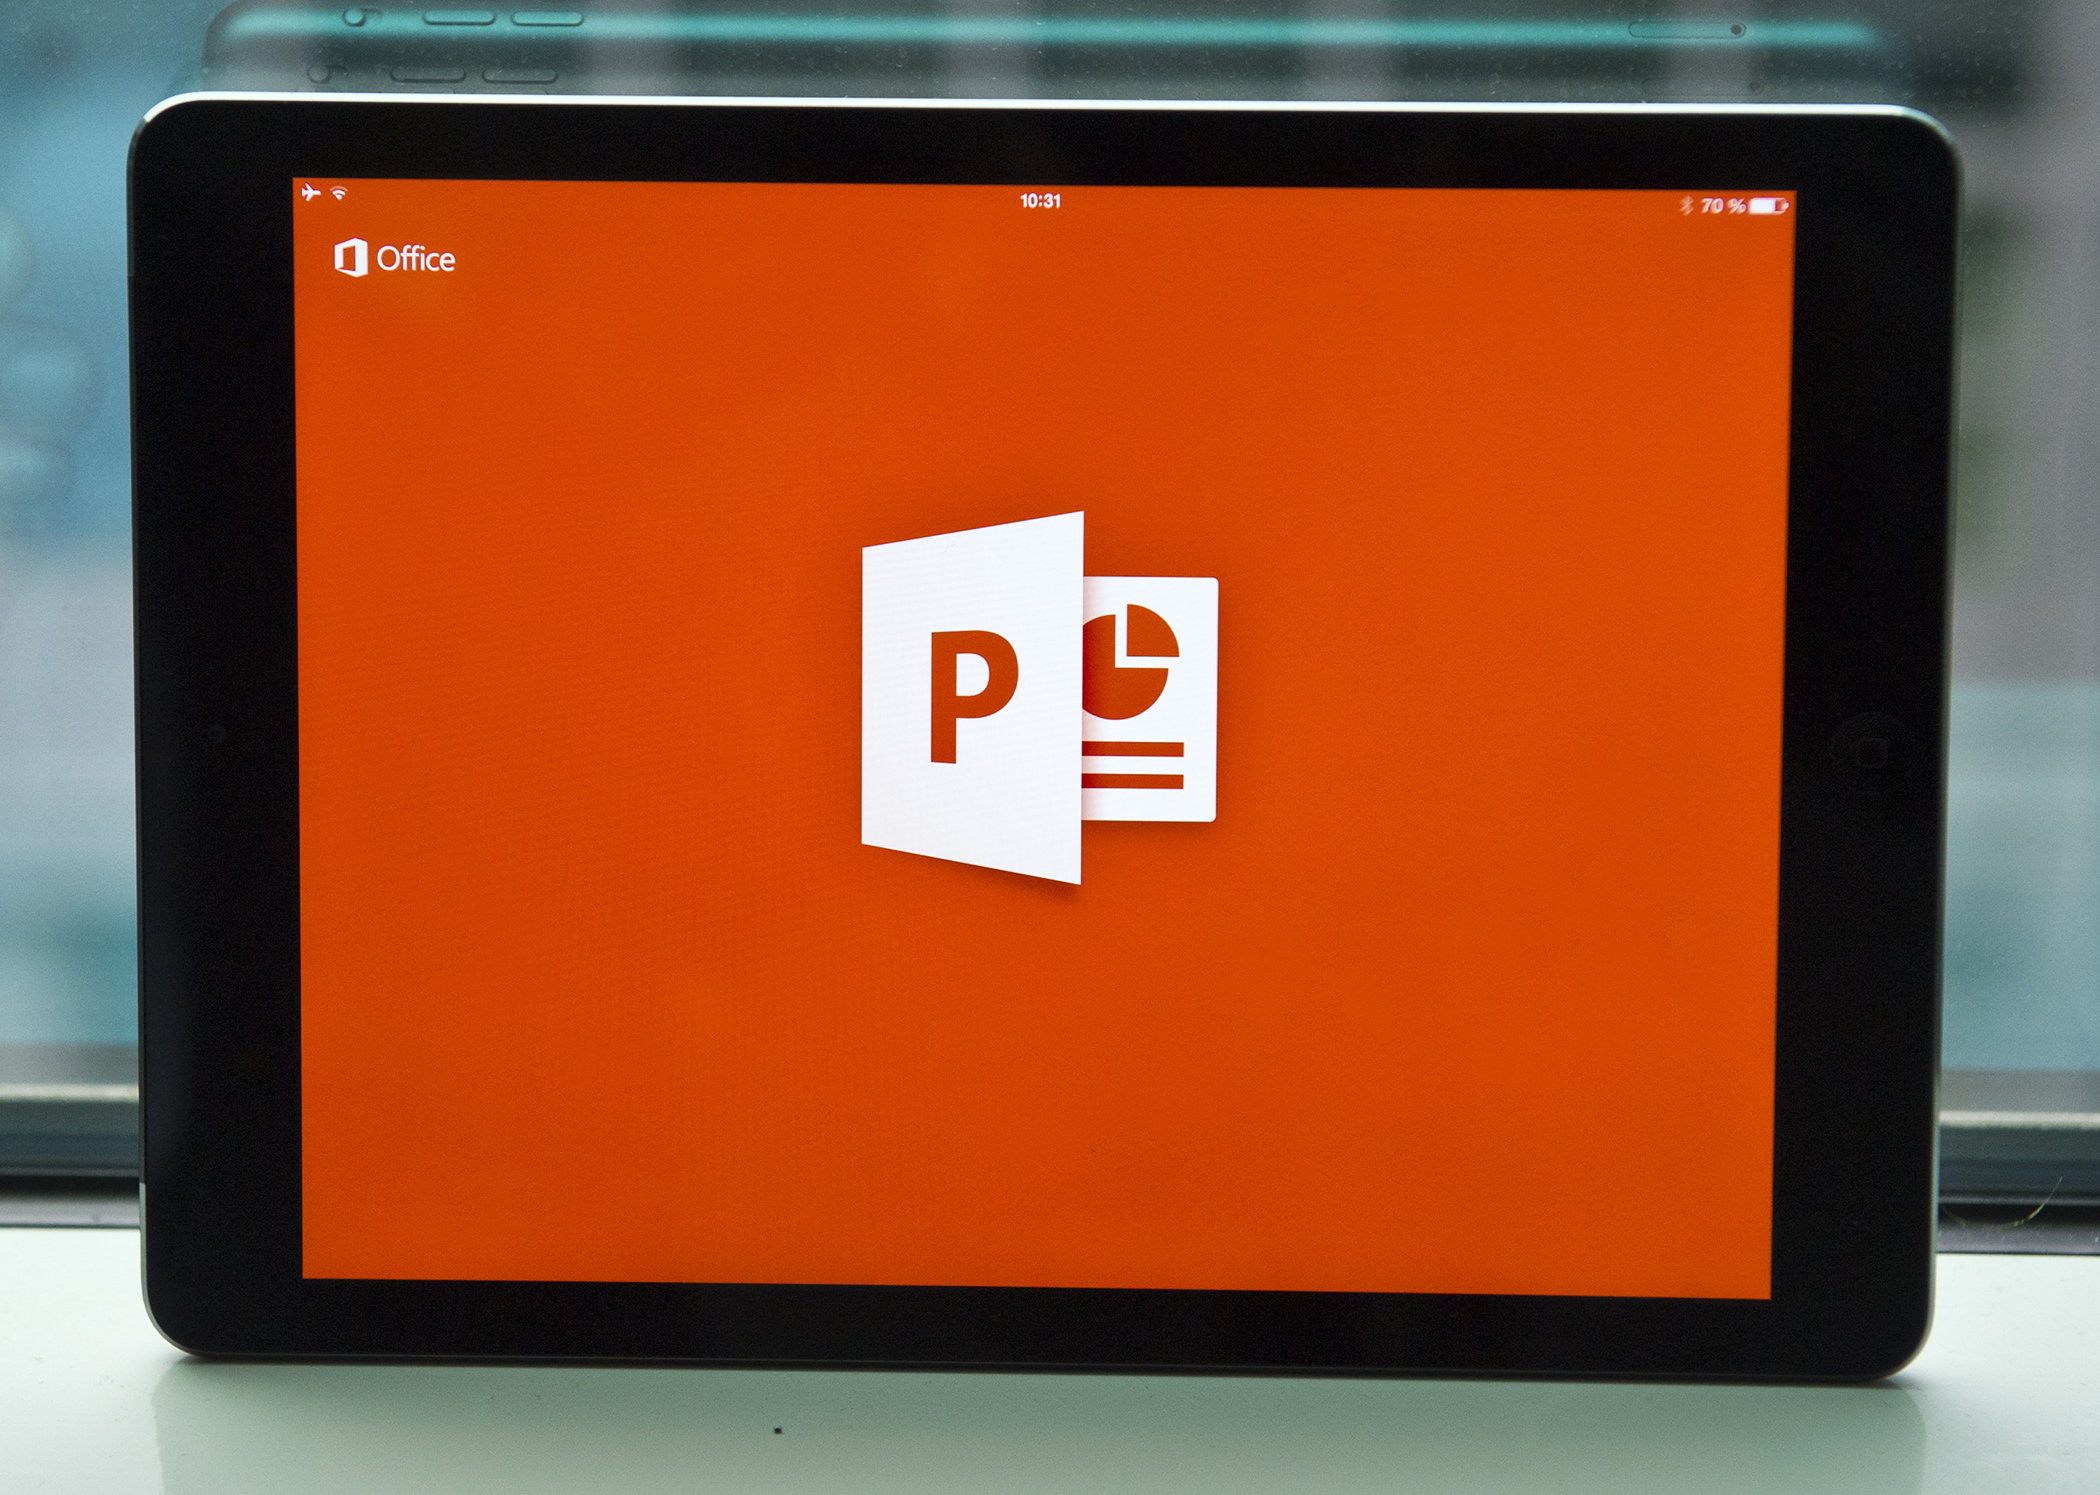 The PowerPoint App of Microsoft Office is displayed on the screen of an iPad Air in Berlin, Germany, March 28, 2014.